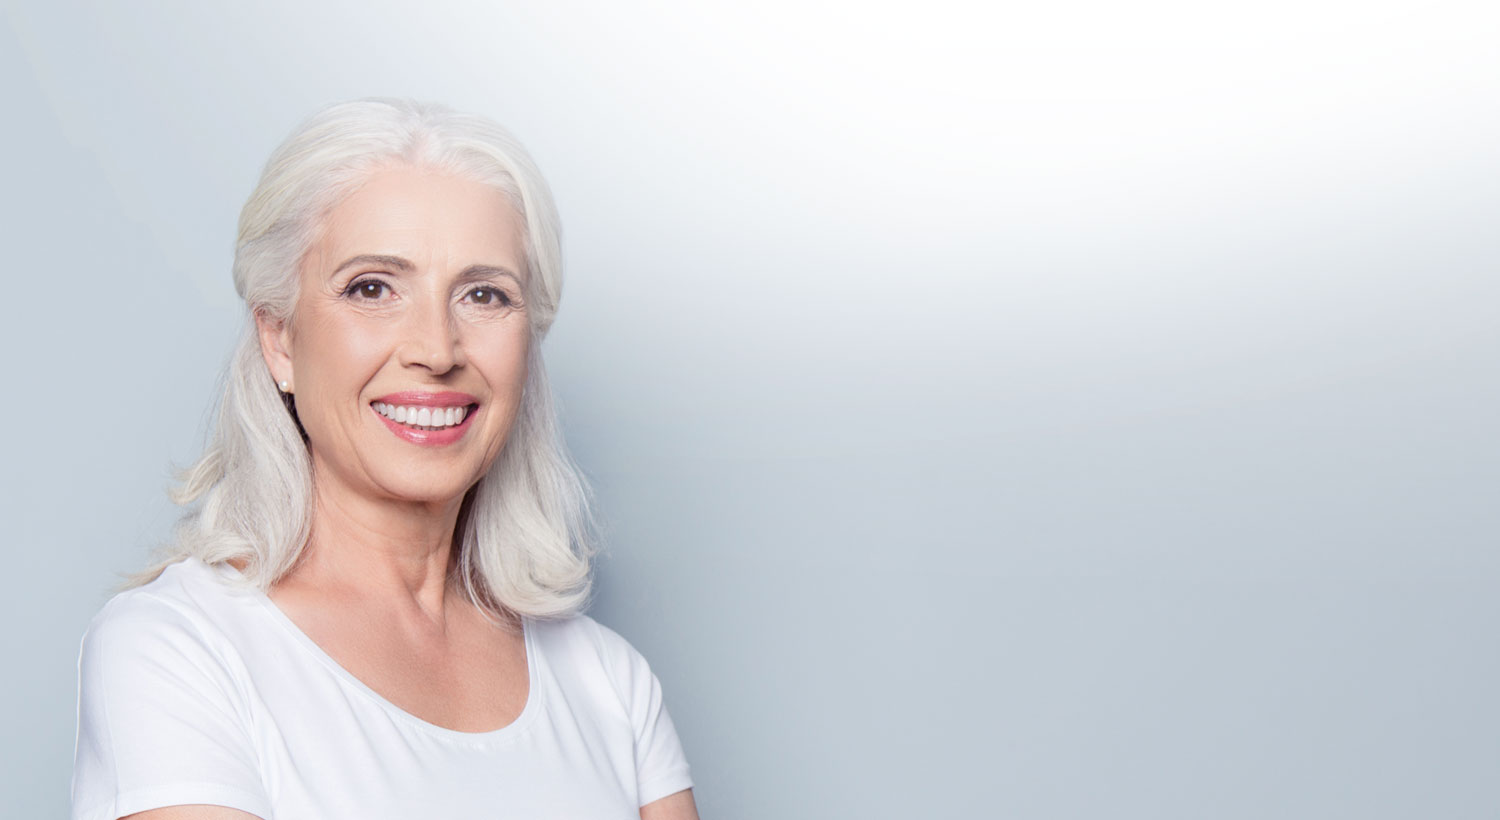 Implants - Replace Missing Teeth